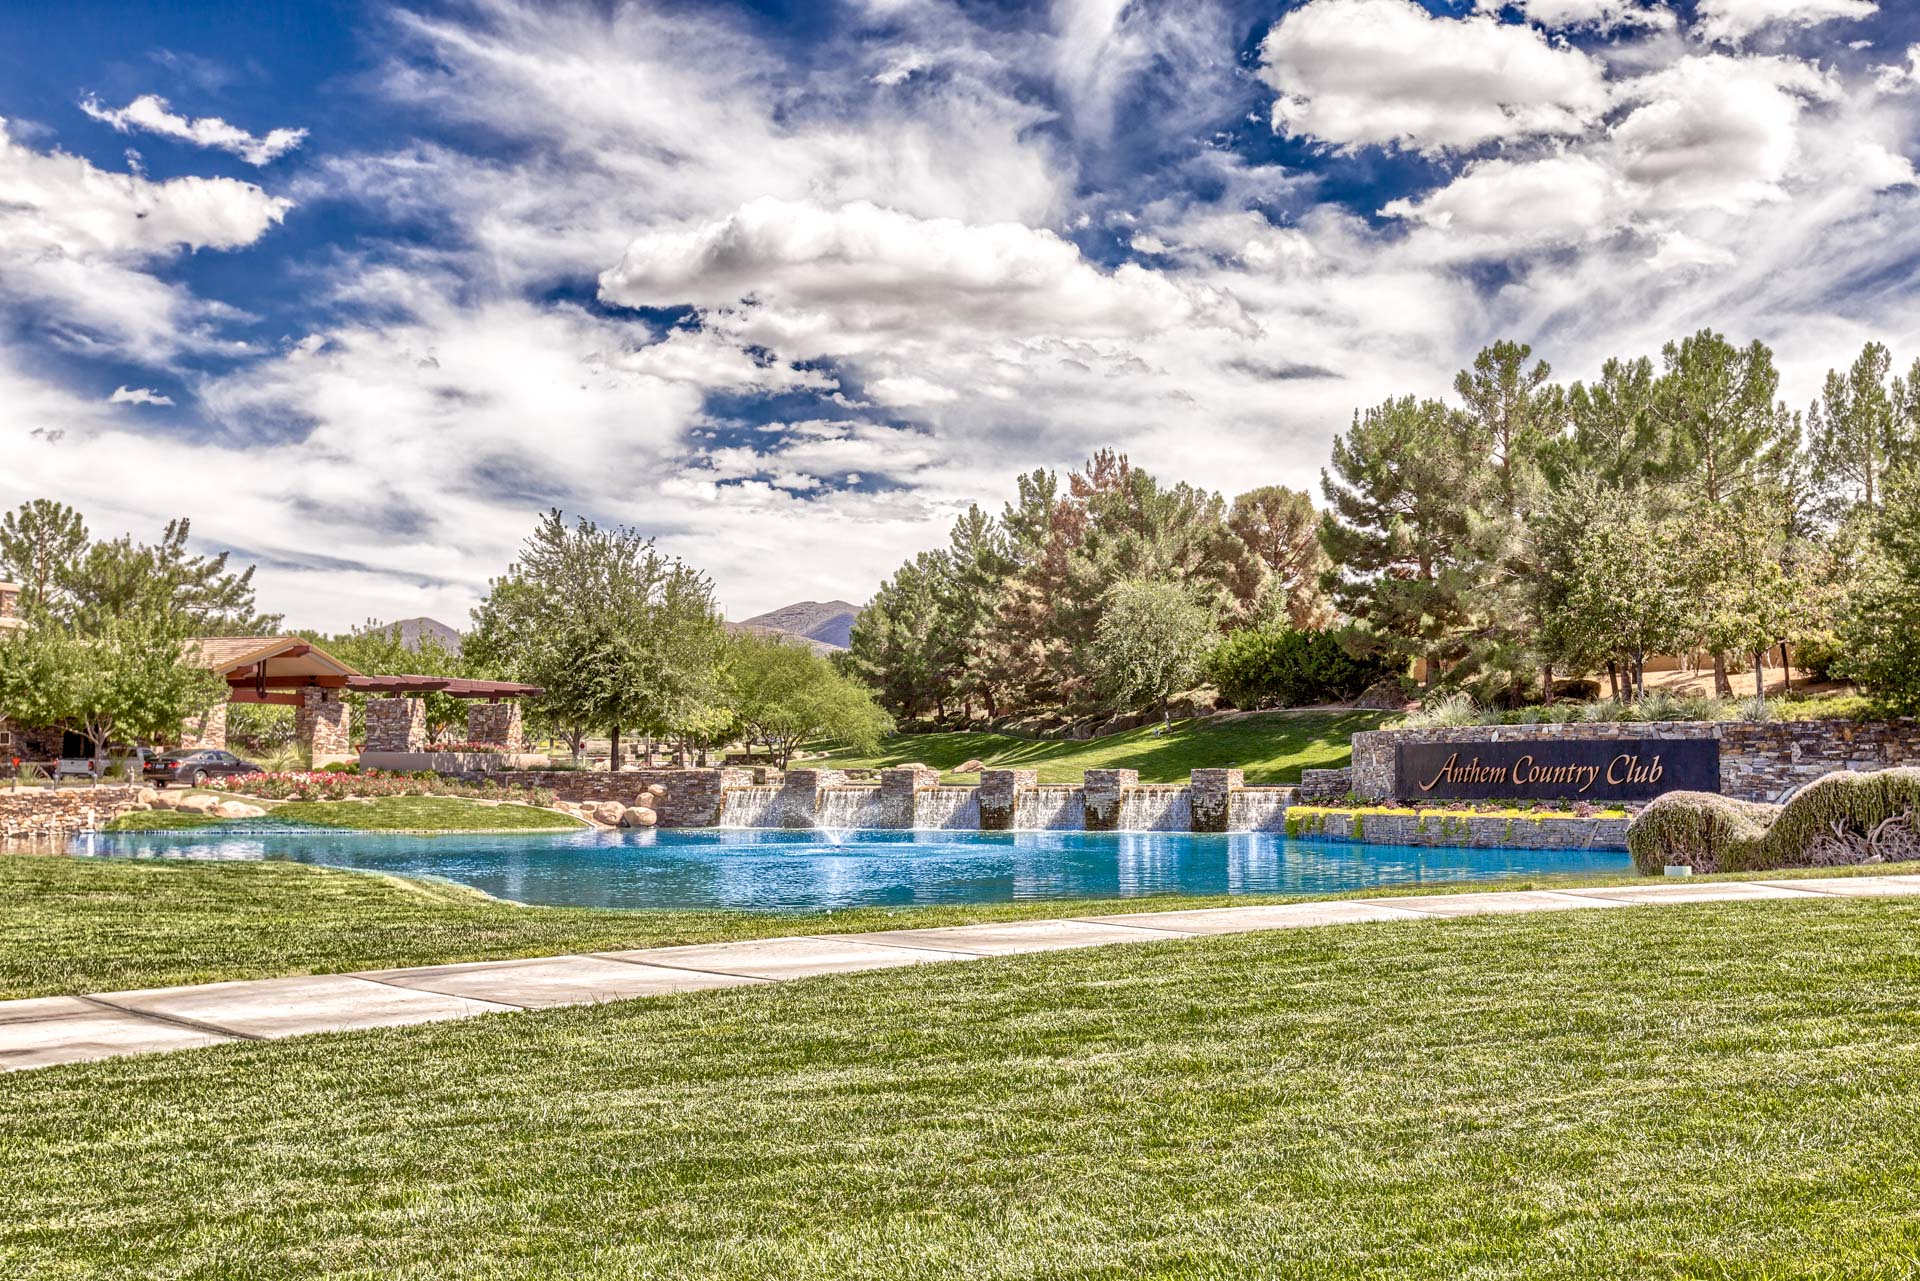 anthem country club homes henderson nv home review